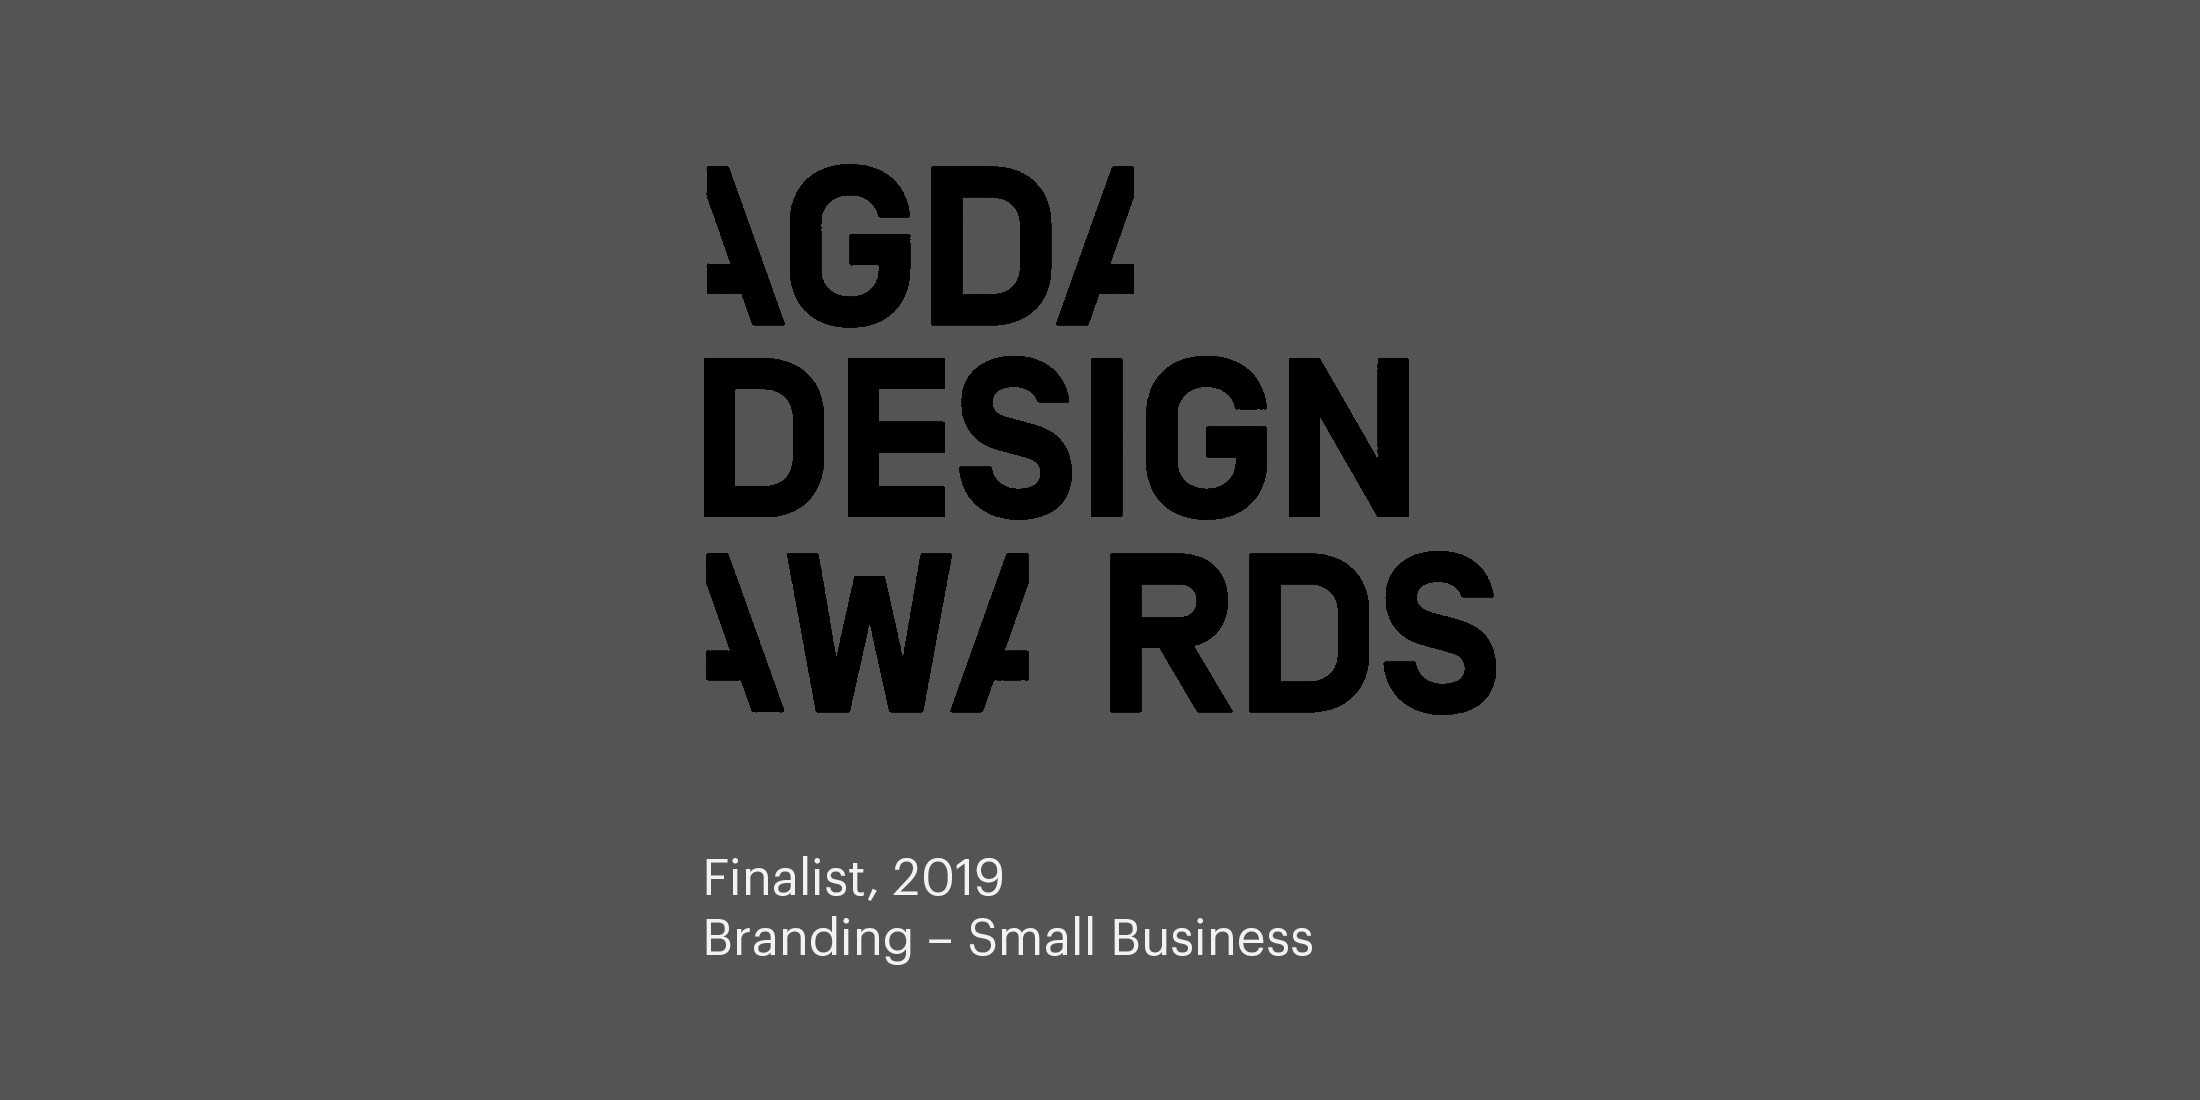 AGDA Design Awards Finalist 2019 , Small Business Branding for eQualitie